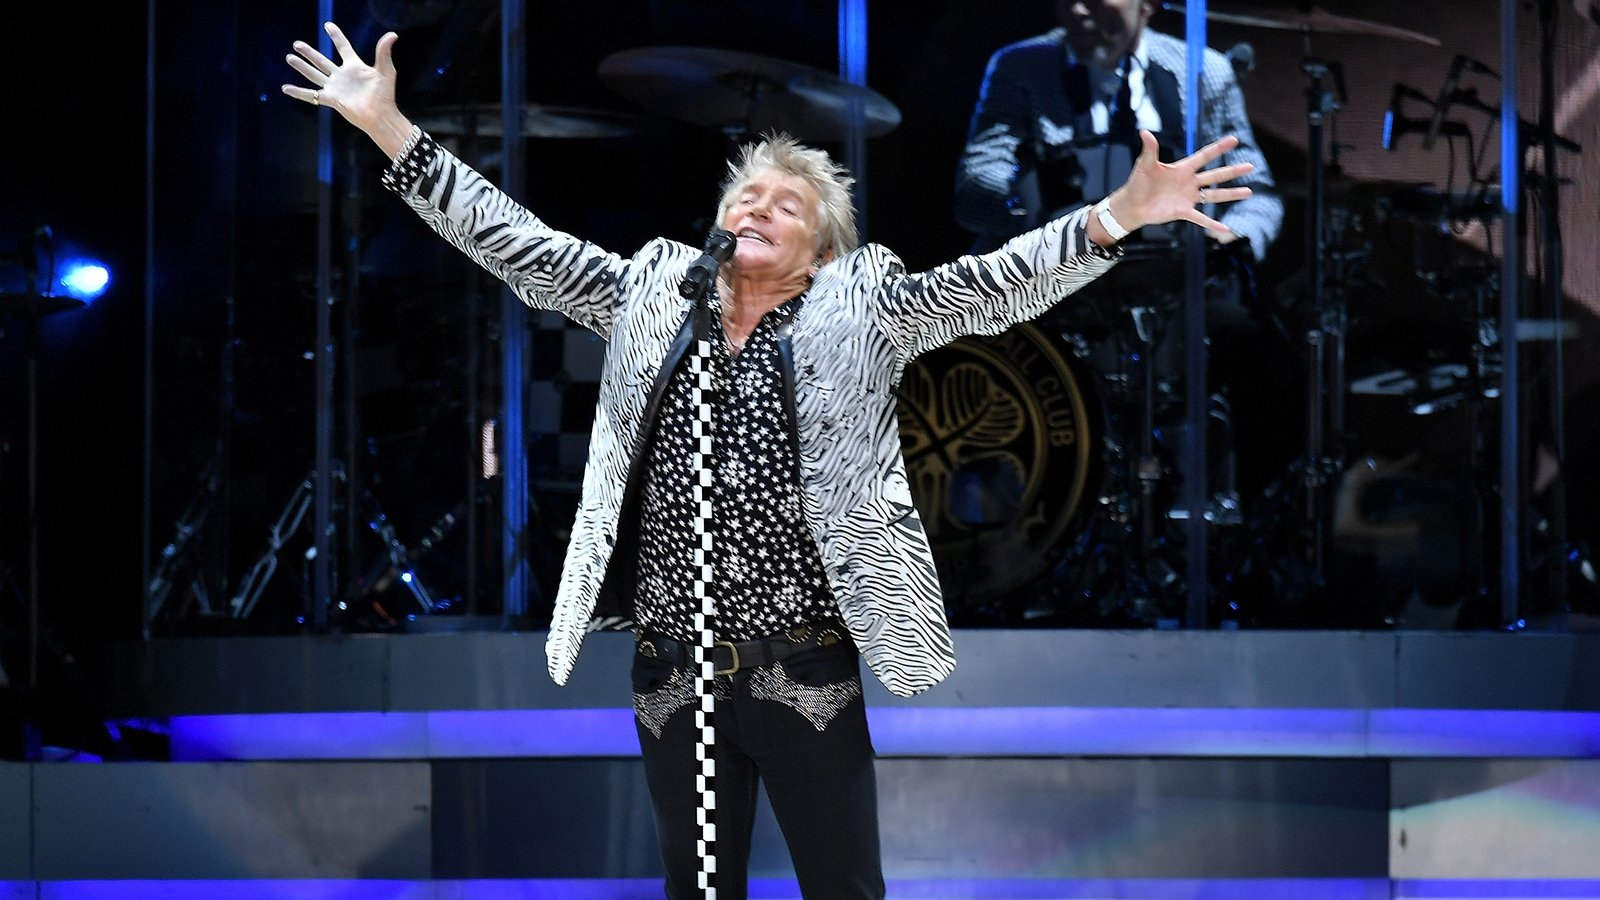 Rod Stewart claims BBC banned his version of Grace